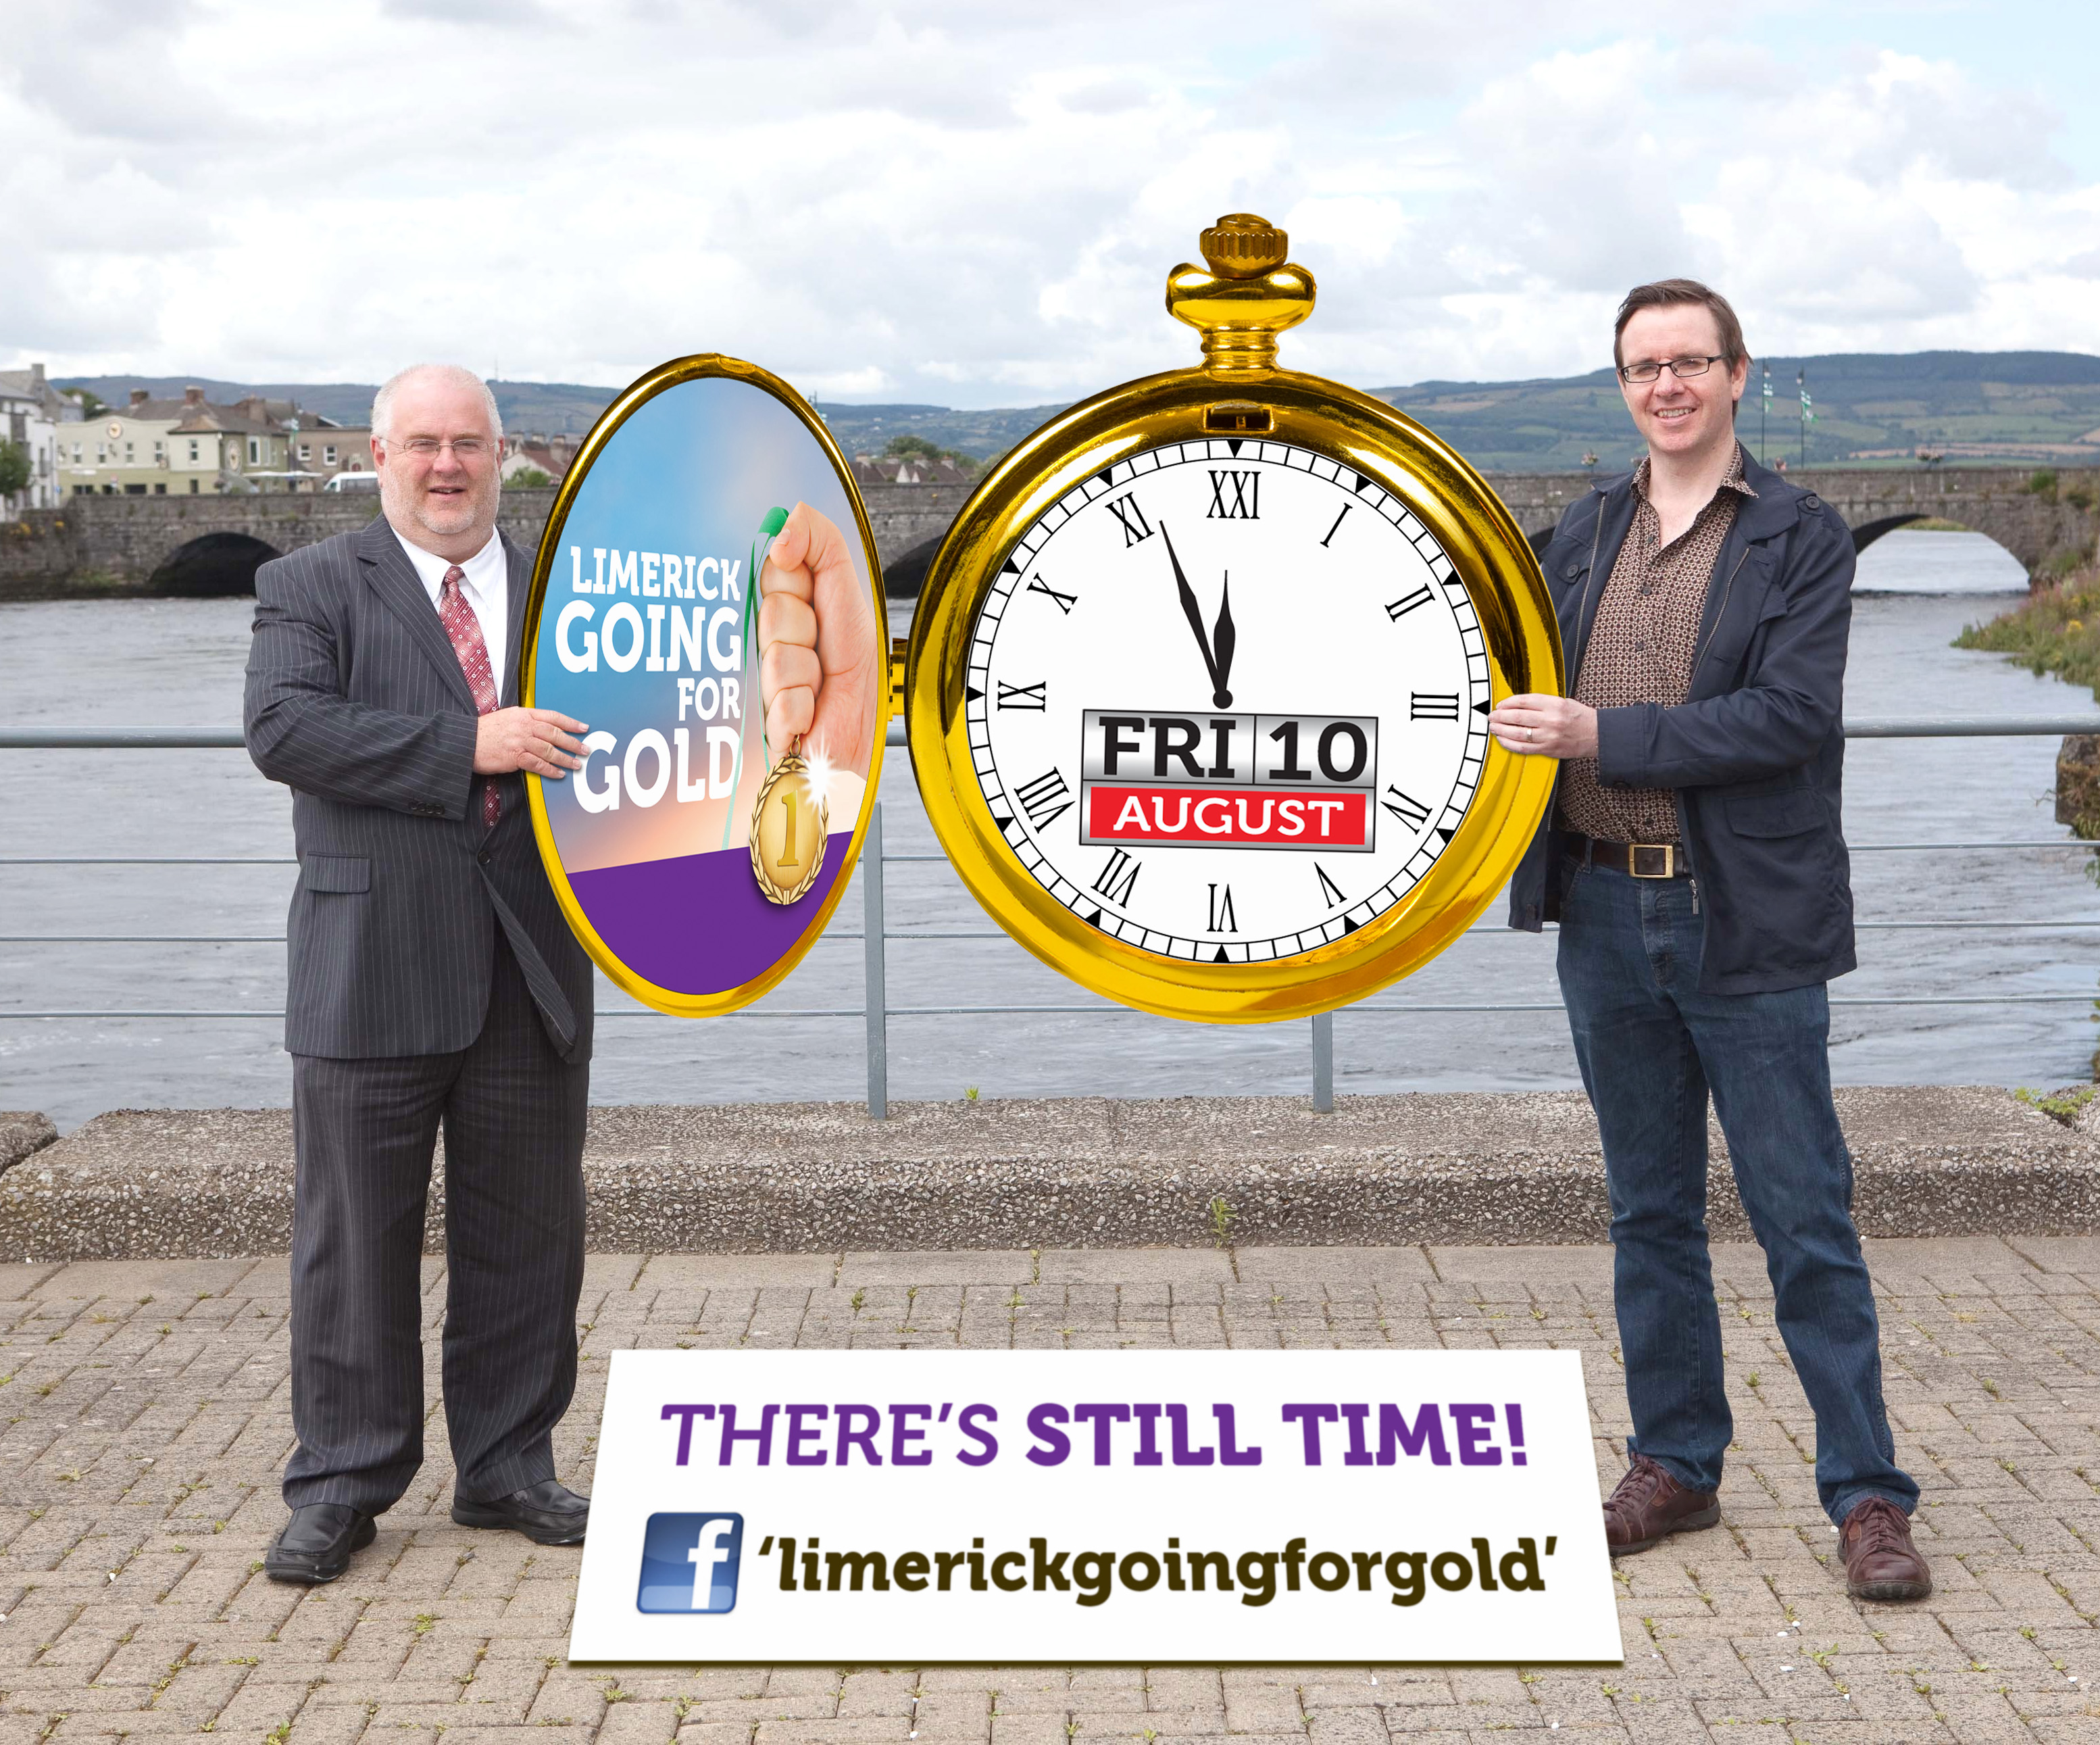 Limerick Going for Gold